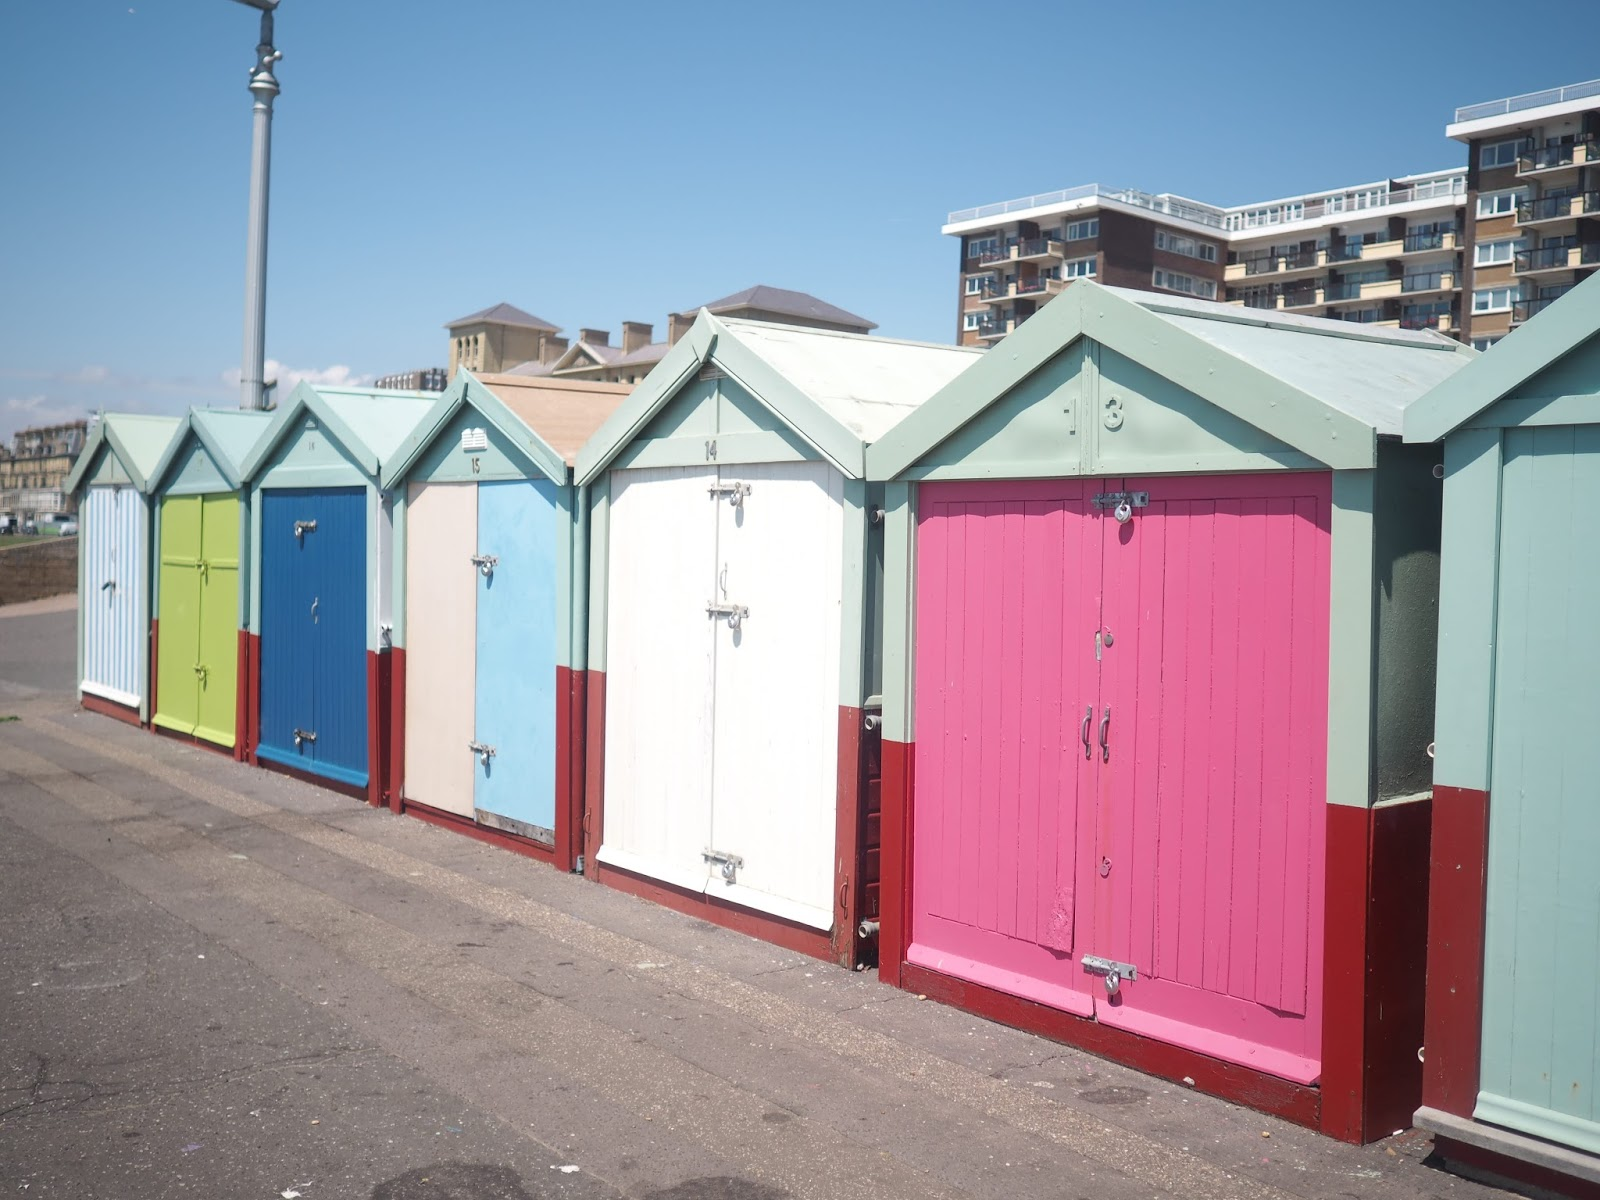 Brighton Hove beach huts